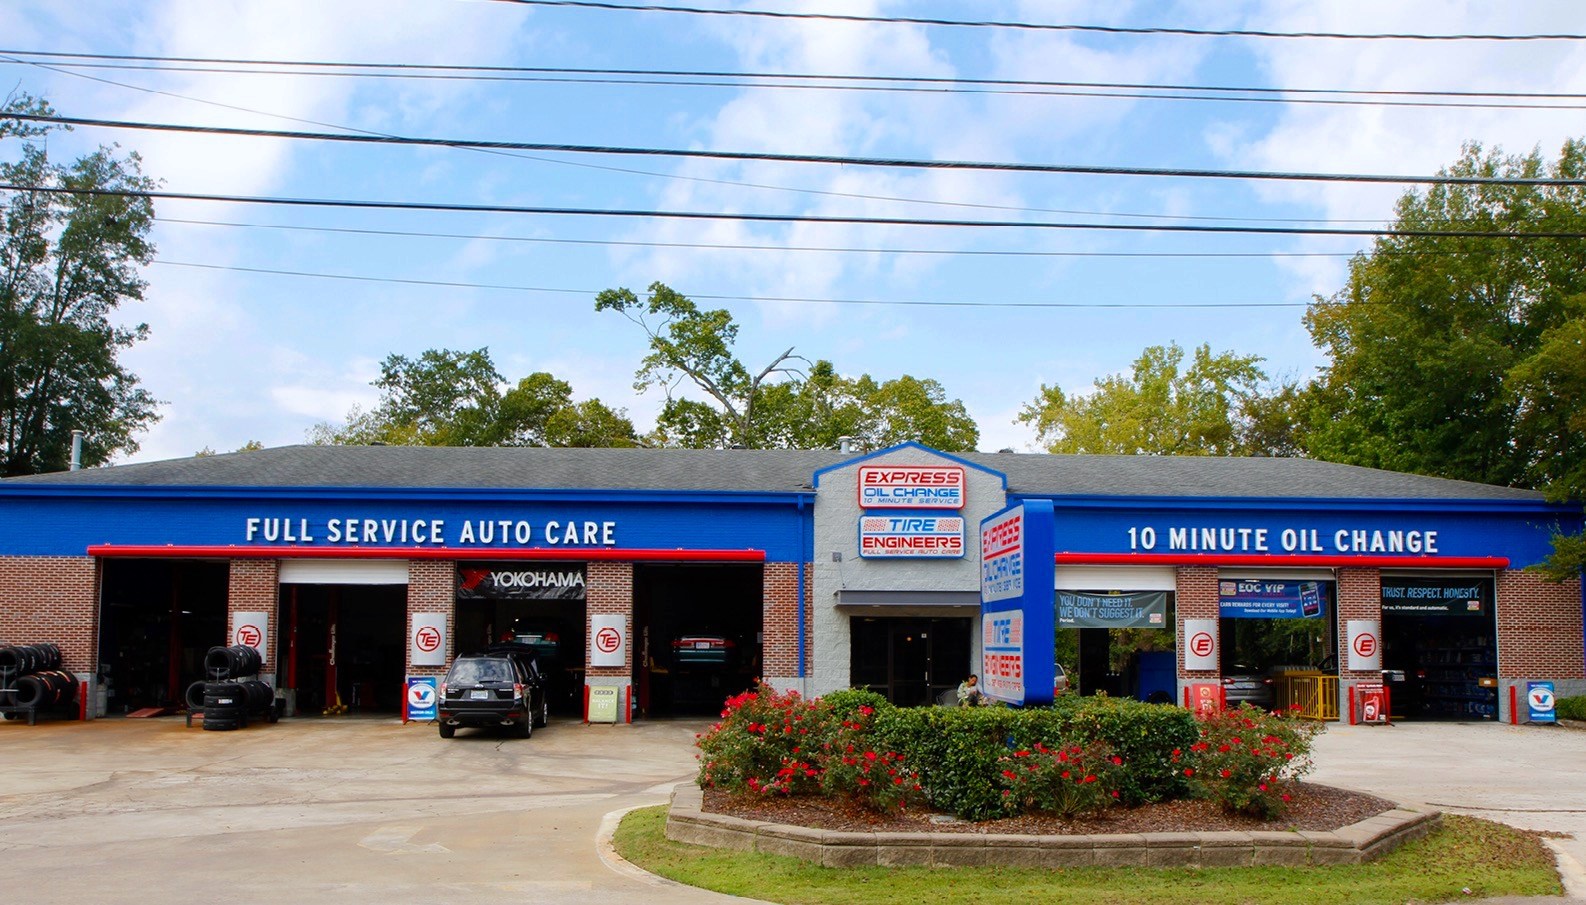 Express Oil Change & Tire Engineers Vestavia Hills, AL - Cahaba Heights store